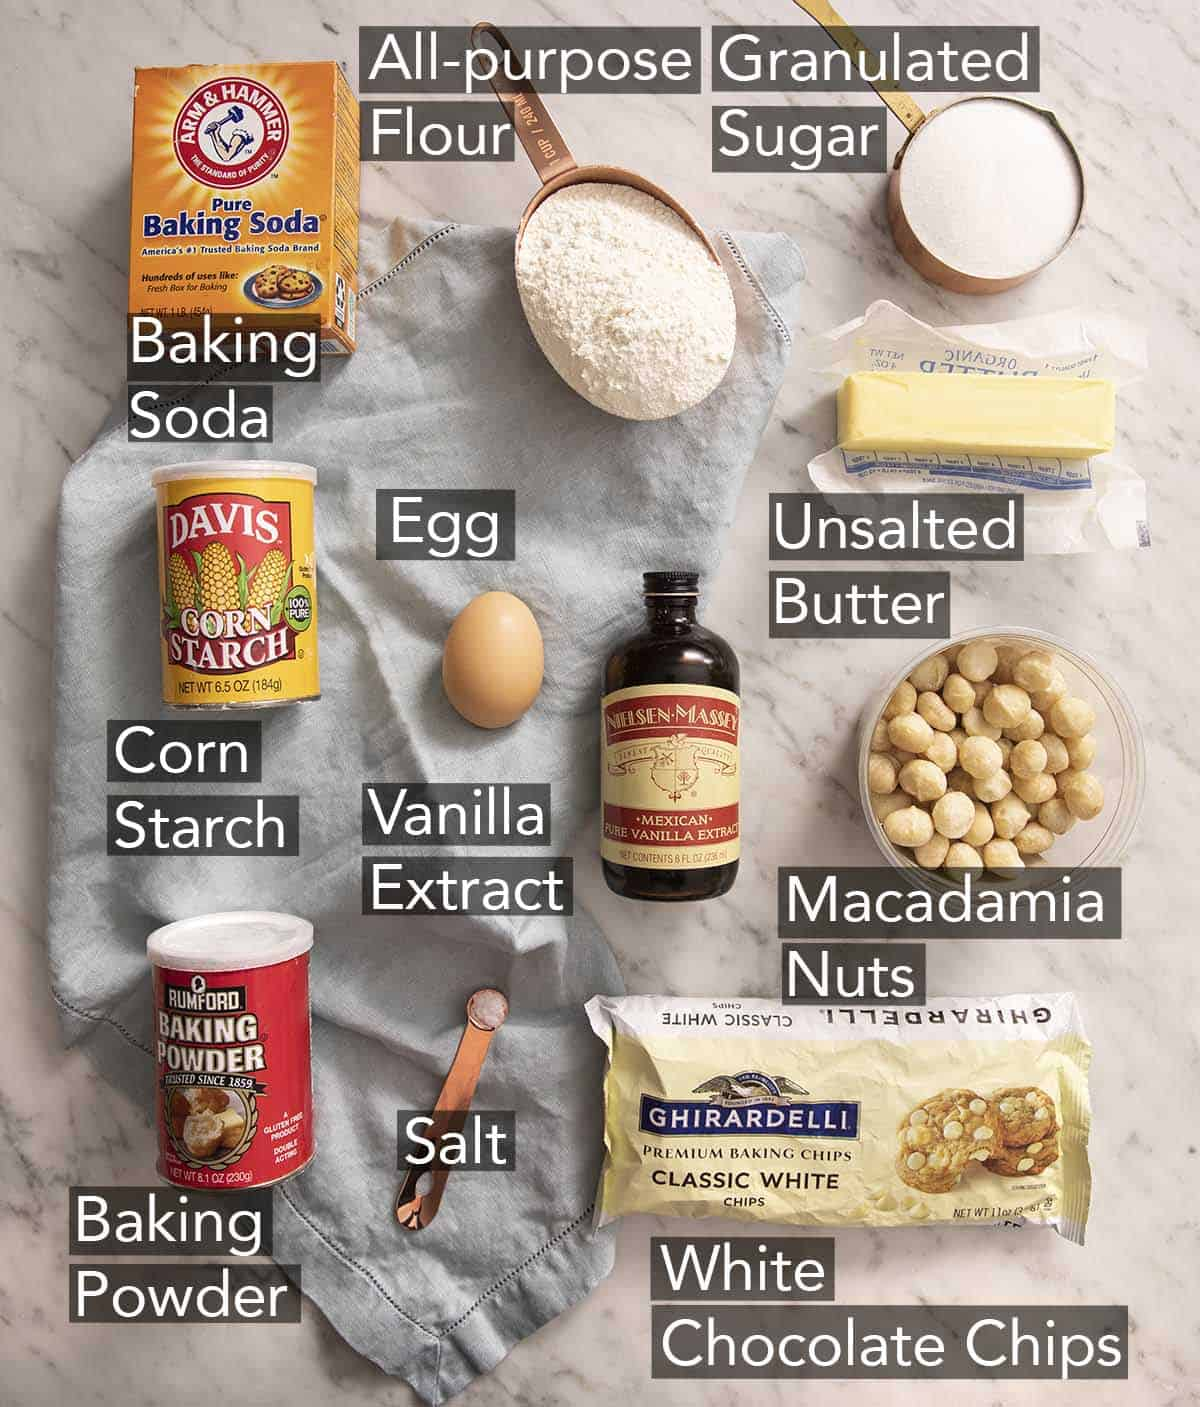 Ingredients to make white chocolate chip macadamia nut cookies on a marble counter.